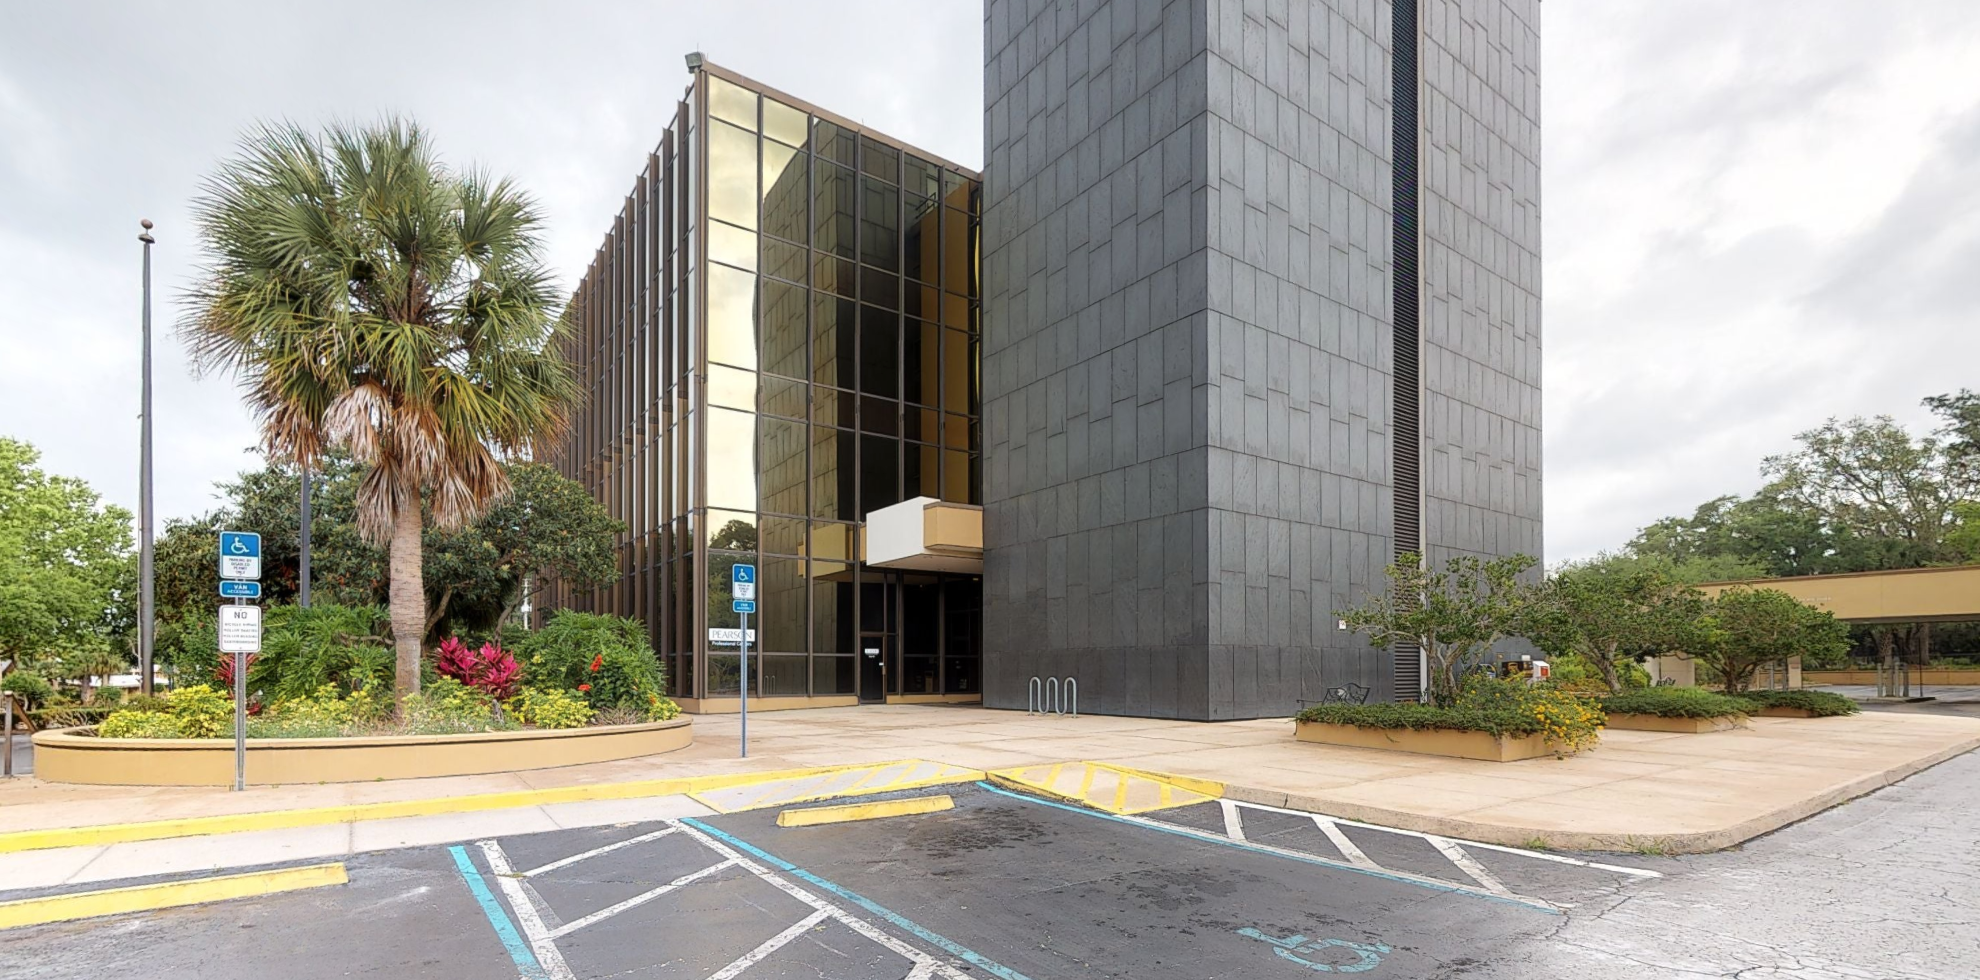 Bank of America financial center with drive-thru ATM | 2815 NW 13th St STE 100, Gainesville, FL 32609